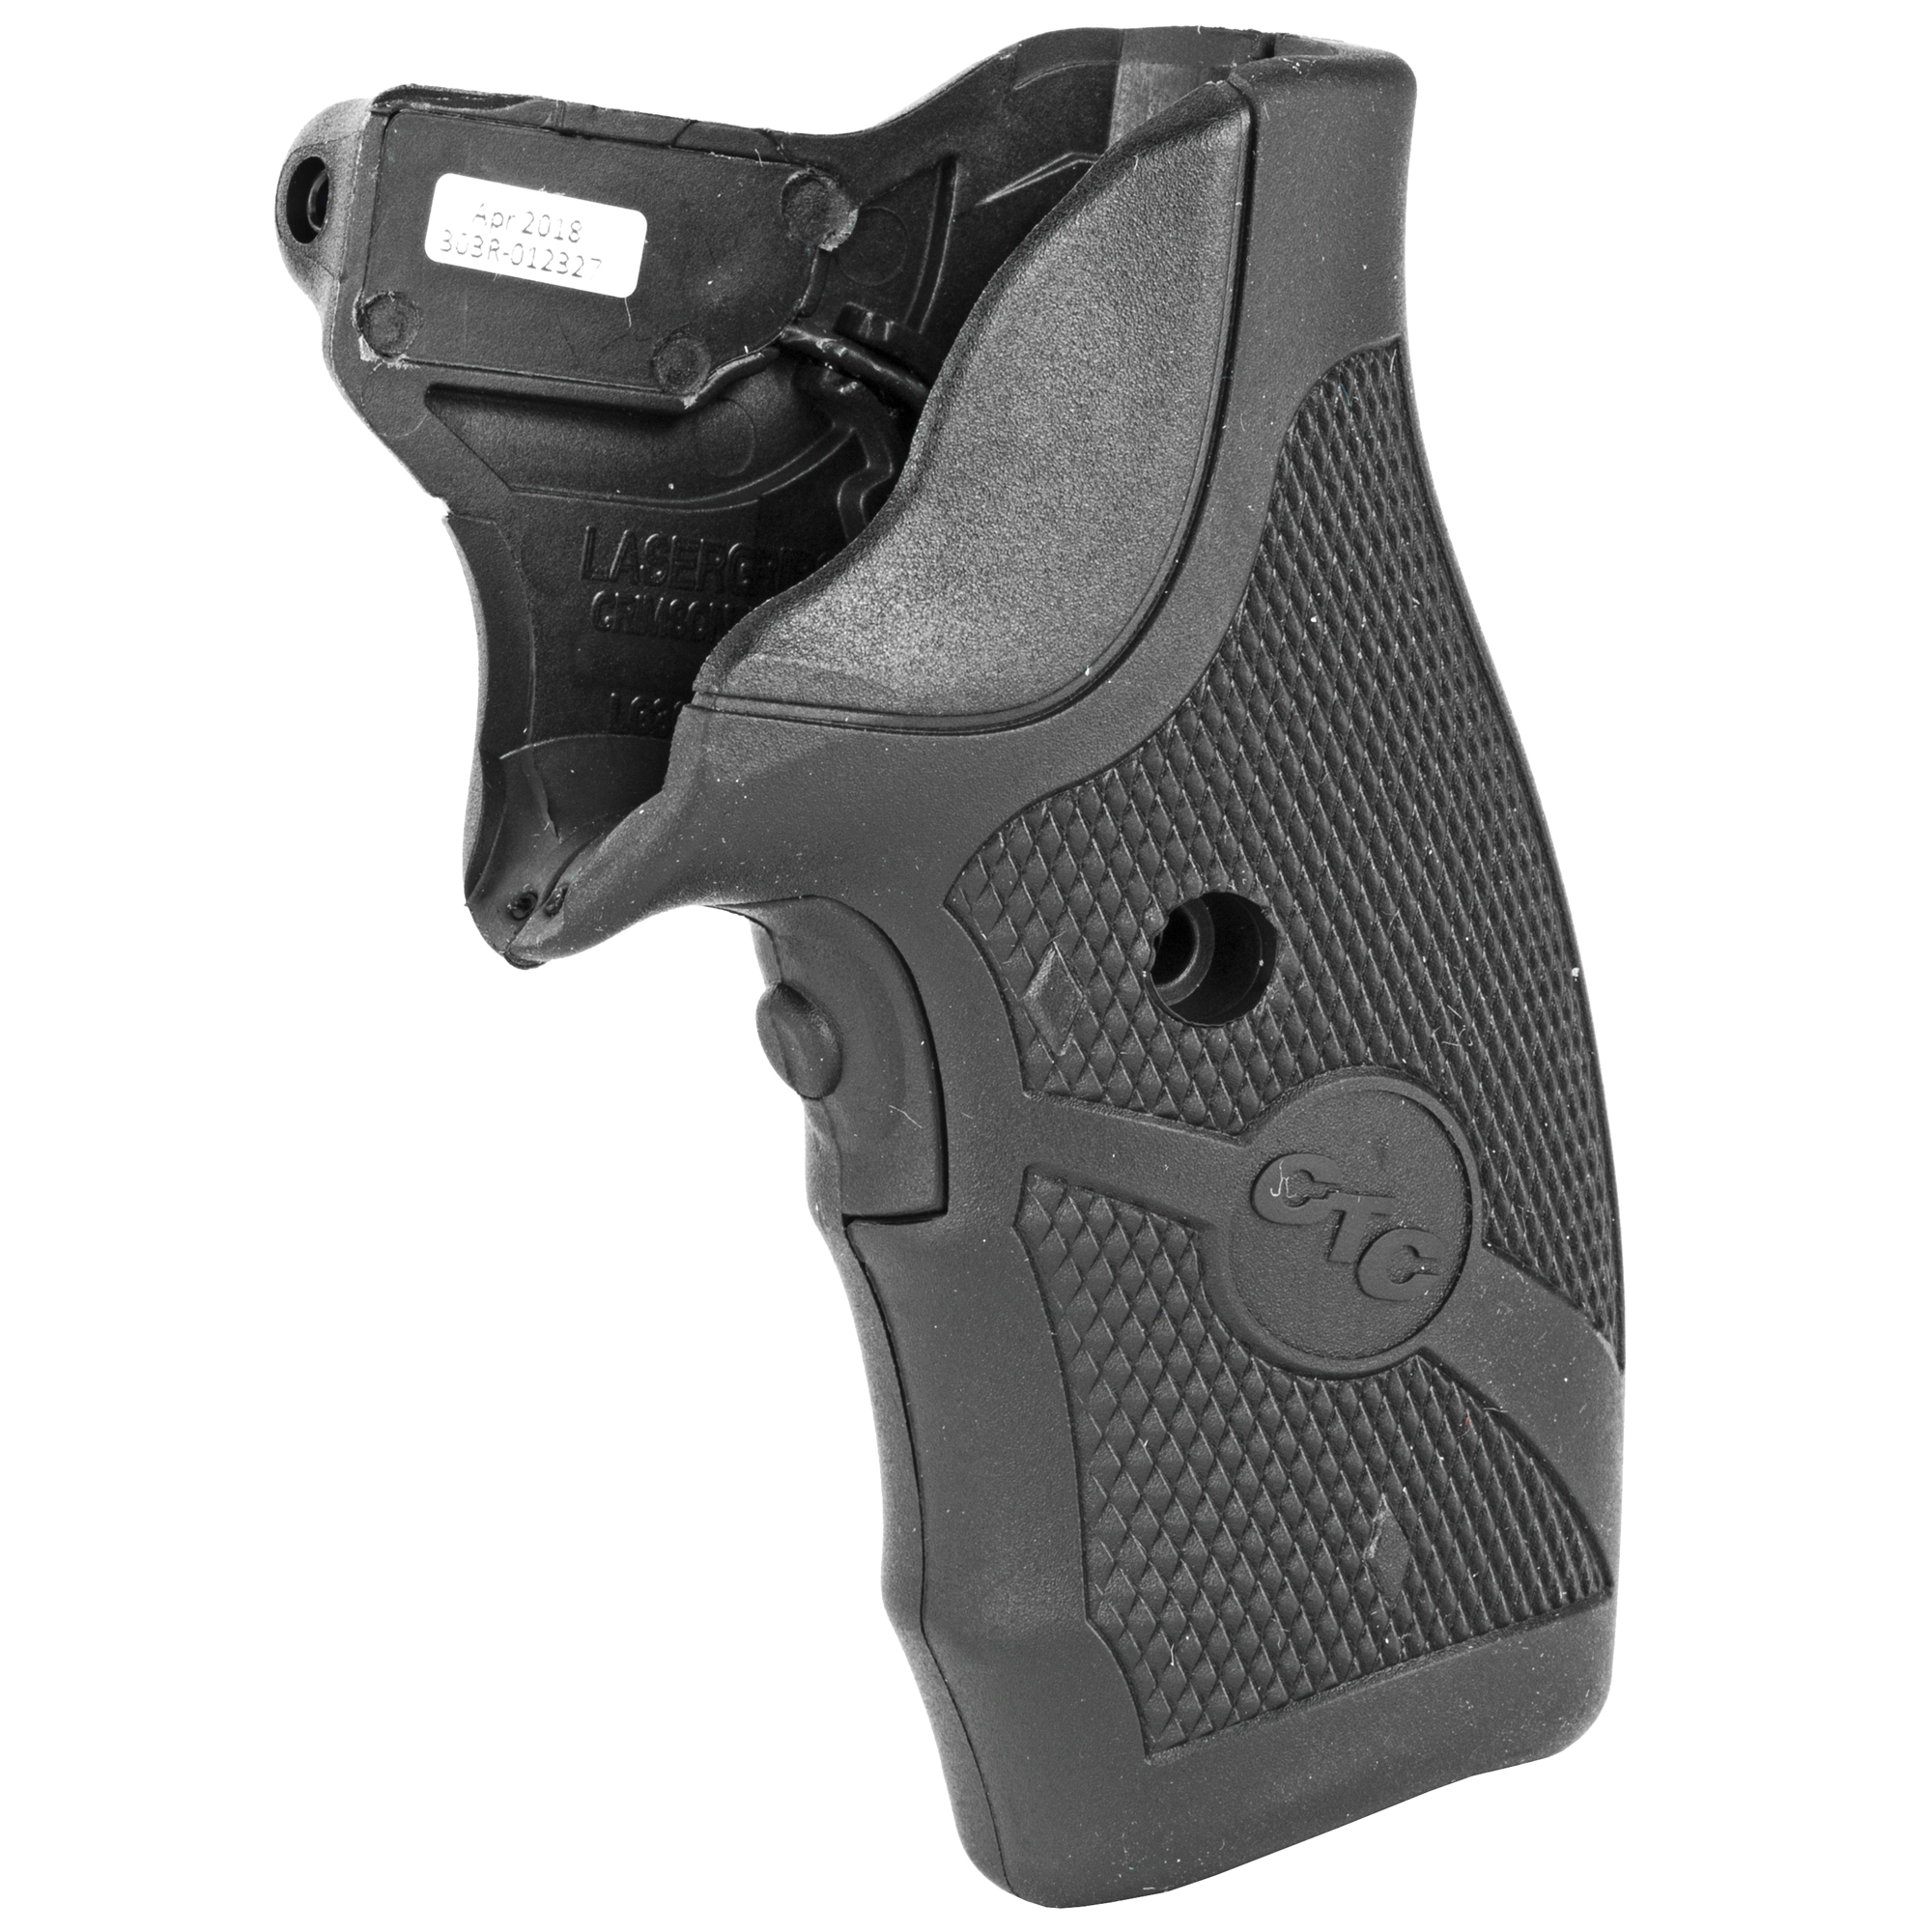 """The LG-303 is an enhanced laser sight offering for Ruger SP101 revolvers. The LG-303 features a comfortable and ergonomic overmold material for a better positive-firing grip on the weapon. With a front activated switch"""" the Lasergrips(R) is engaged automatically"""" or as we say"""" instinctively"""" as you hold the revolver naturally. The LG-303 installs in seconds and is fully adjustable for windage and elevation."""